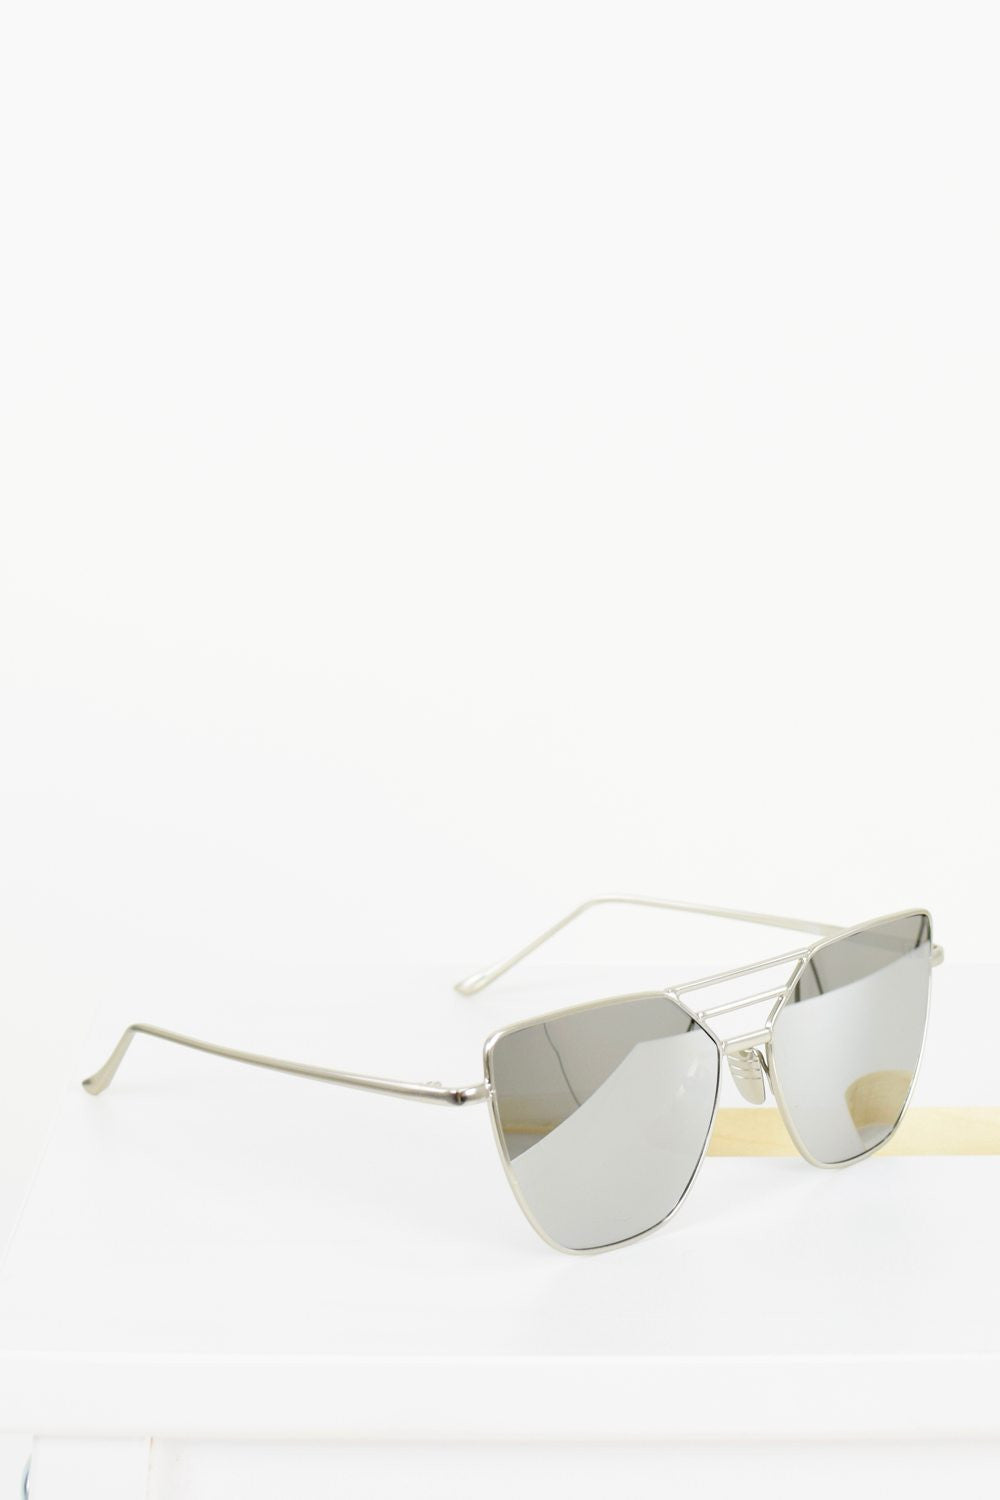 PARIS rose Tinted Gold Mirrored Sunglasses - 4